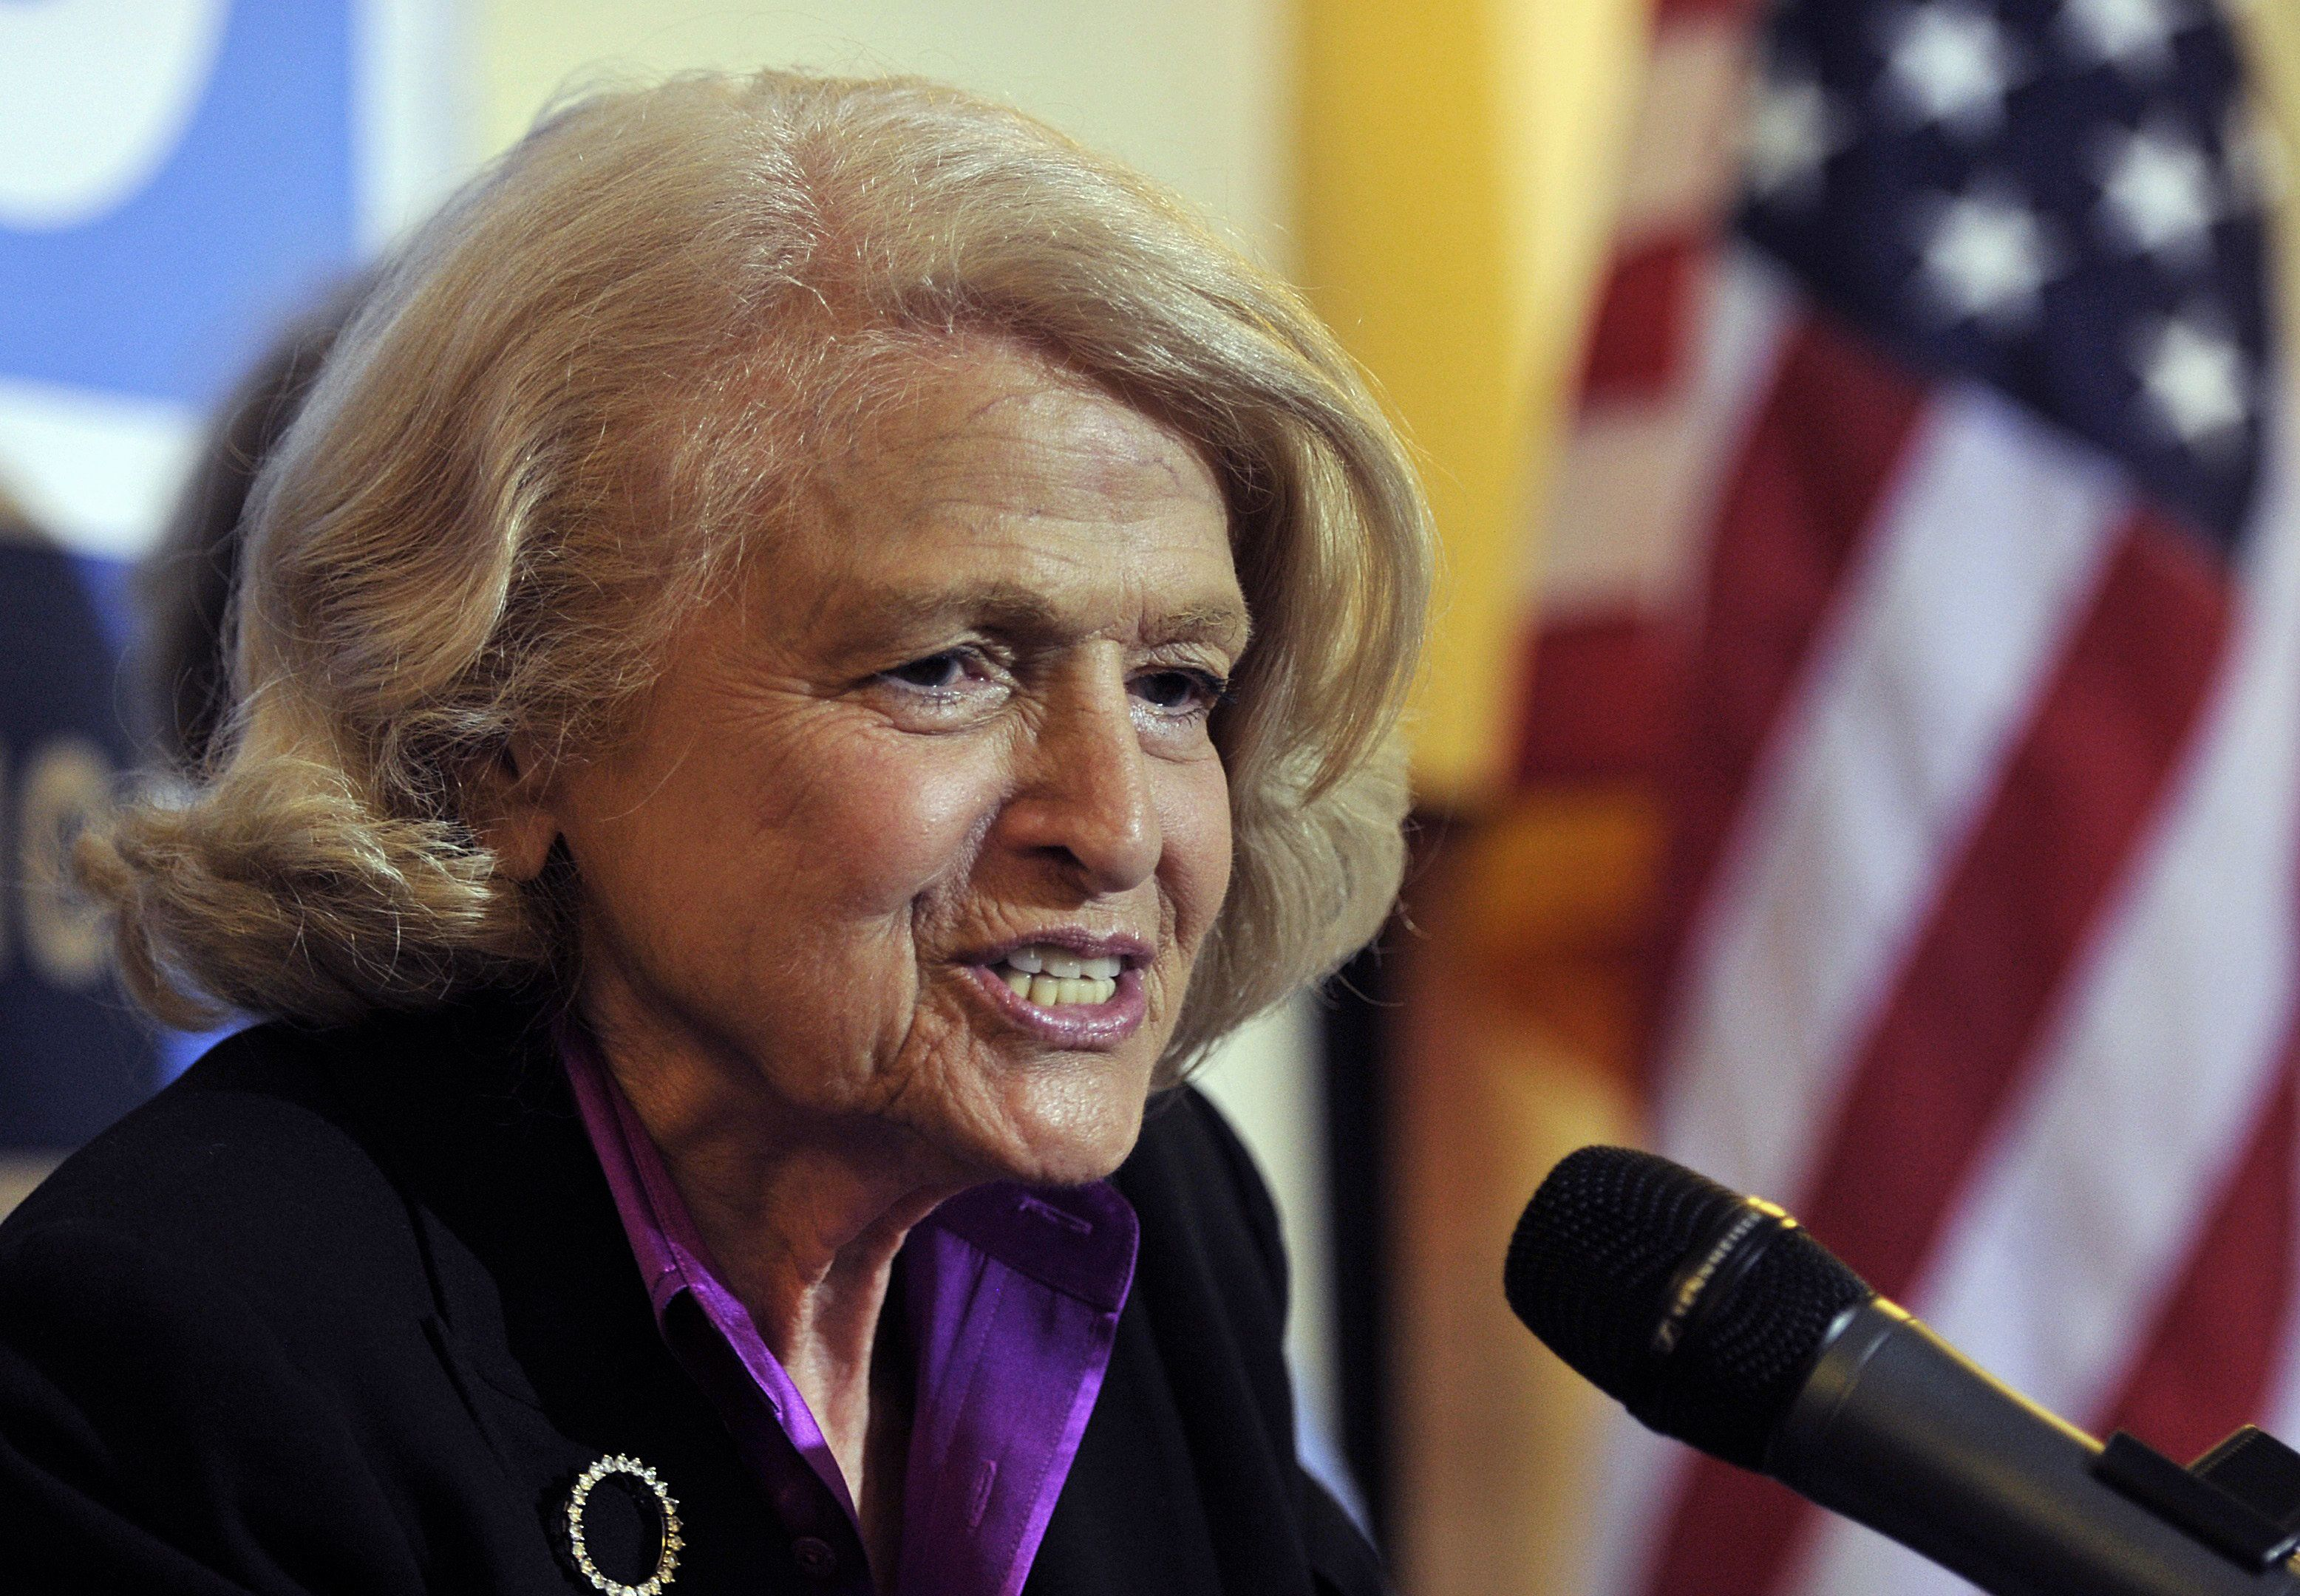 Defense of Marriage Act plantiff Edith 'Edie' Windsor Edith speaks at a press conference at the The Lesbian, Gay, Bisexual and Transgender Community Center in New York on June 26, 2013.  The US Supreme Court on Wednesday struck down a controversial federal law that defines marriage as a union between a man and a woman, in a major victory for supporters of same-sex marriage.The Defense of Marriage Act (DOMA) had denied married gay and lesbian couples in the United States the same rights and benefits that straight couples have long taken for granted.    AFP PHOTO / TIMOTHY CLARY        (Photo credit should read TIMOTHY CLARY/AFP/Getty Images)